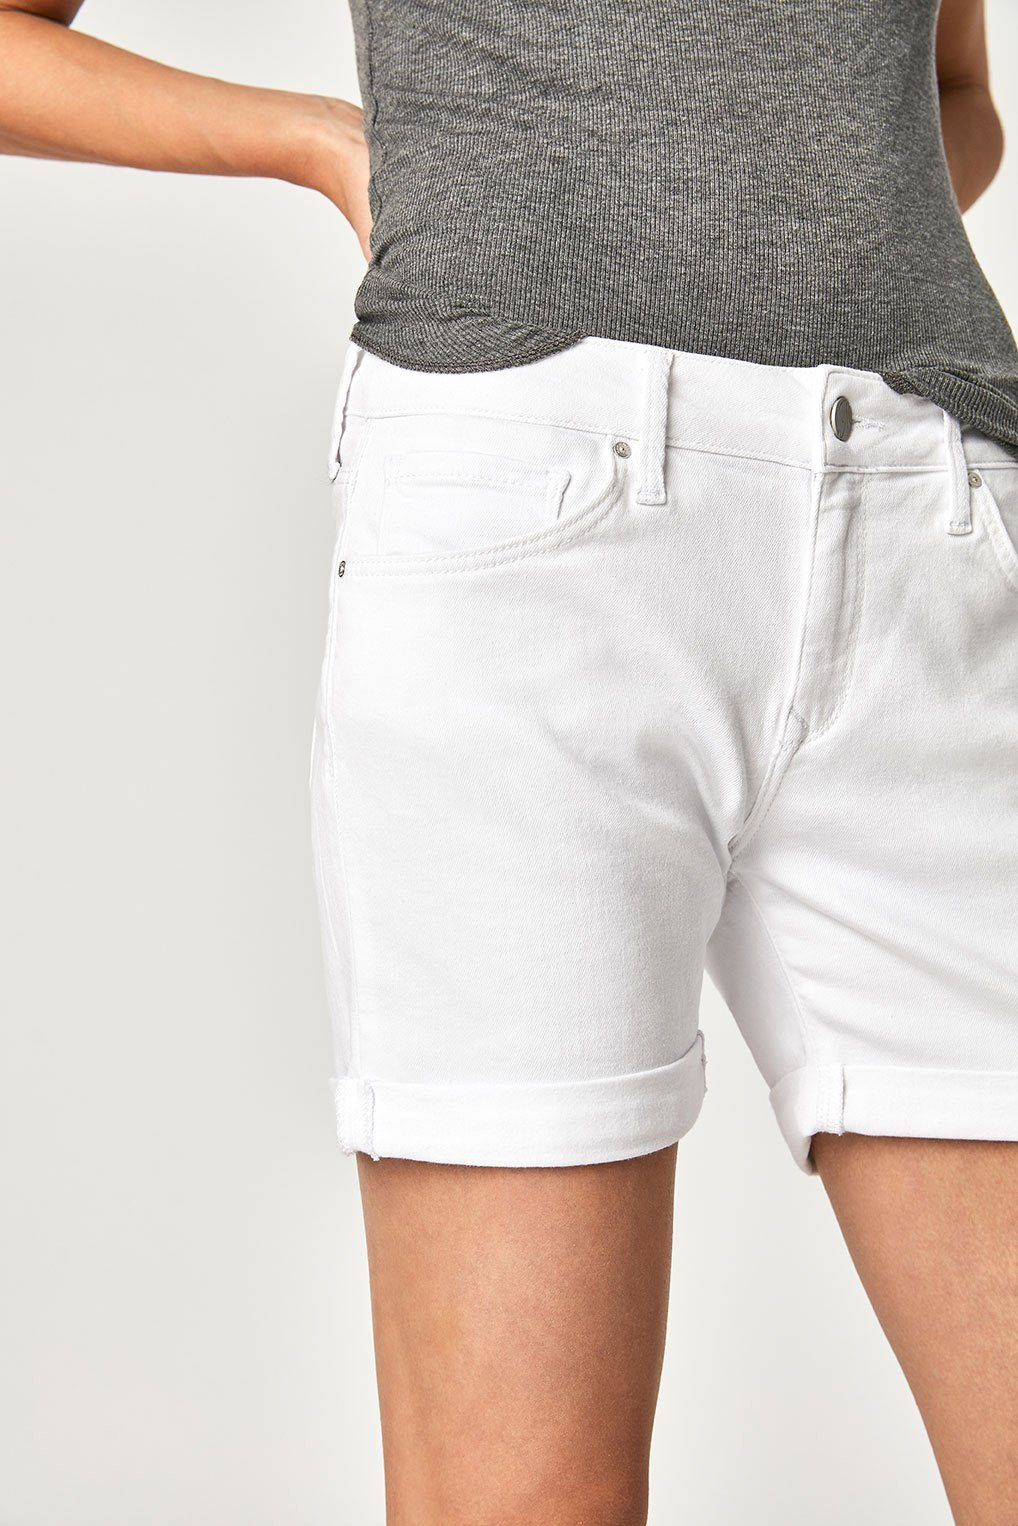 PIXIE SHORTS IN WHITE TRIBECA Image 2